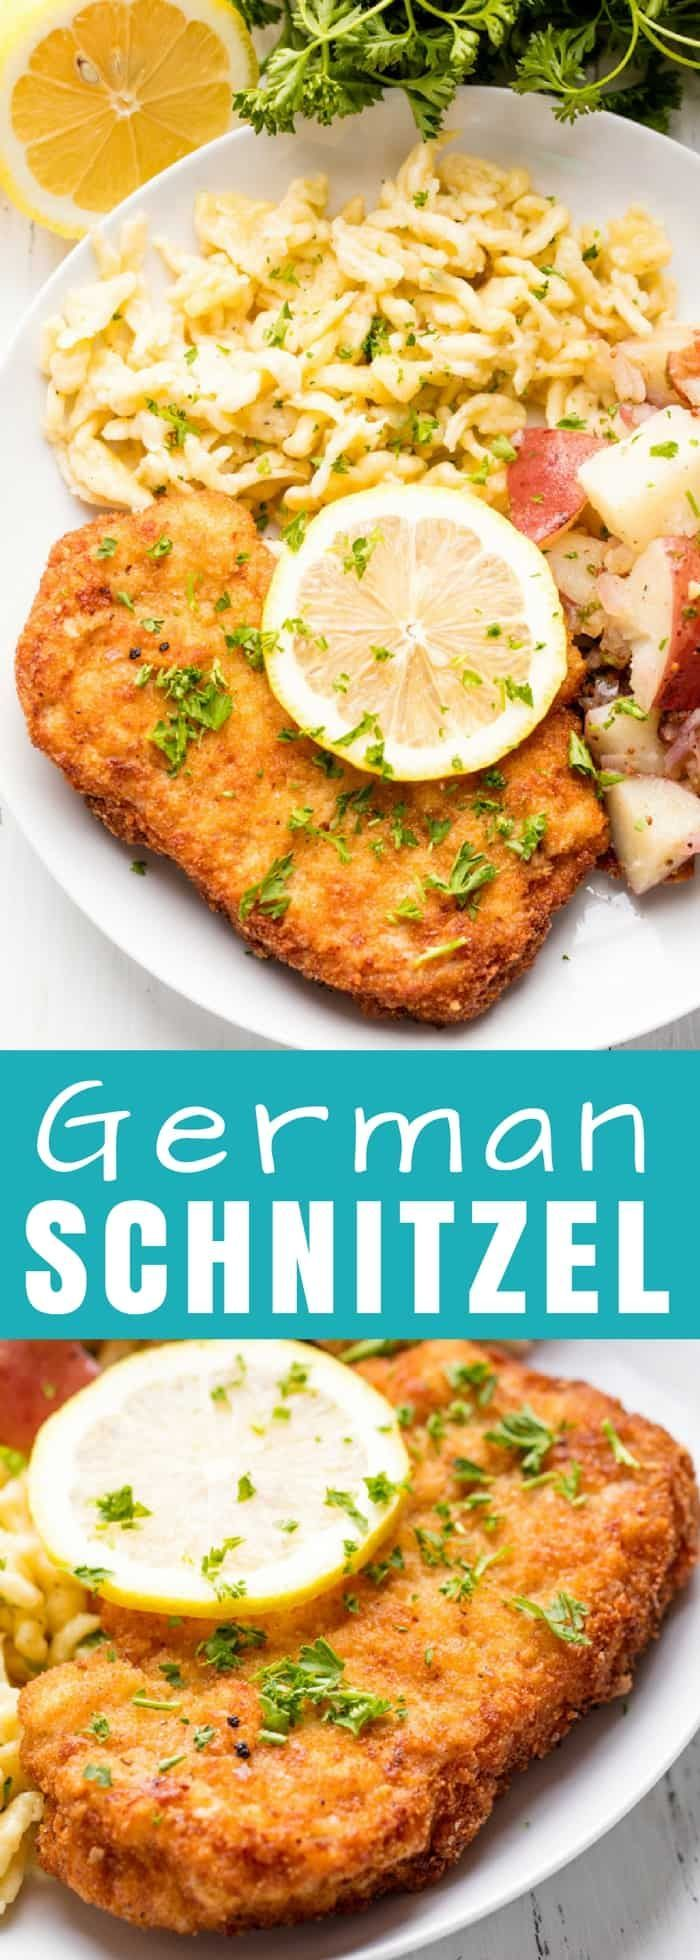 This Authentic German Schnitzel Recipe has been passed down for generations. Use this same method for pork schnitzel, veal schnitzel (weiner schnitzel), or chicken schnitzel.#stayathomechef #Germanfood #pork